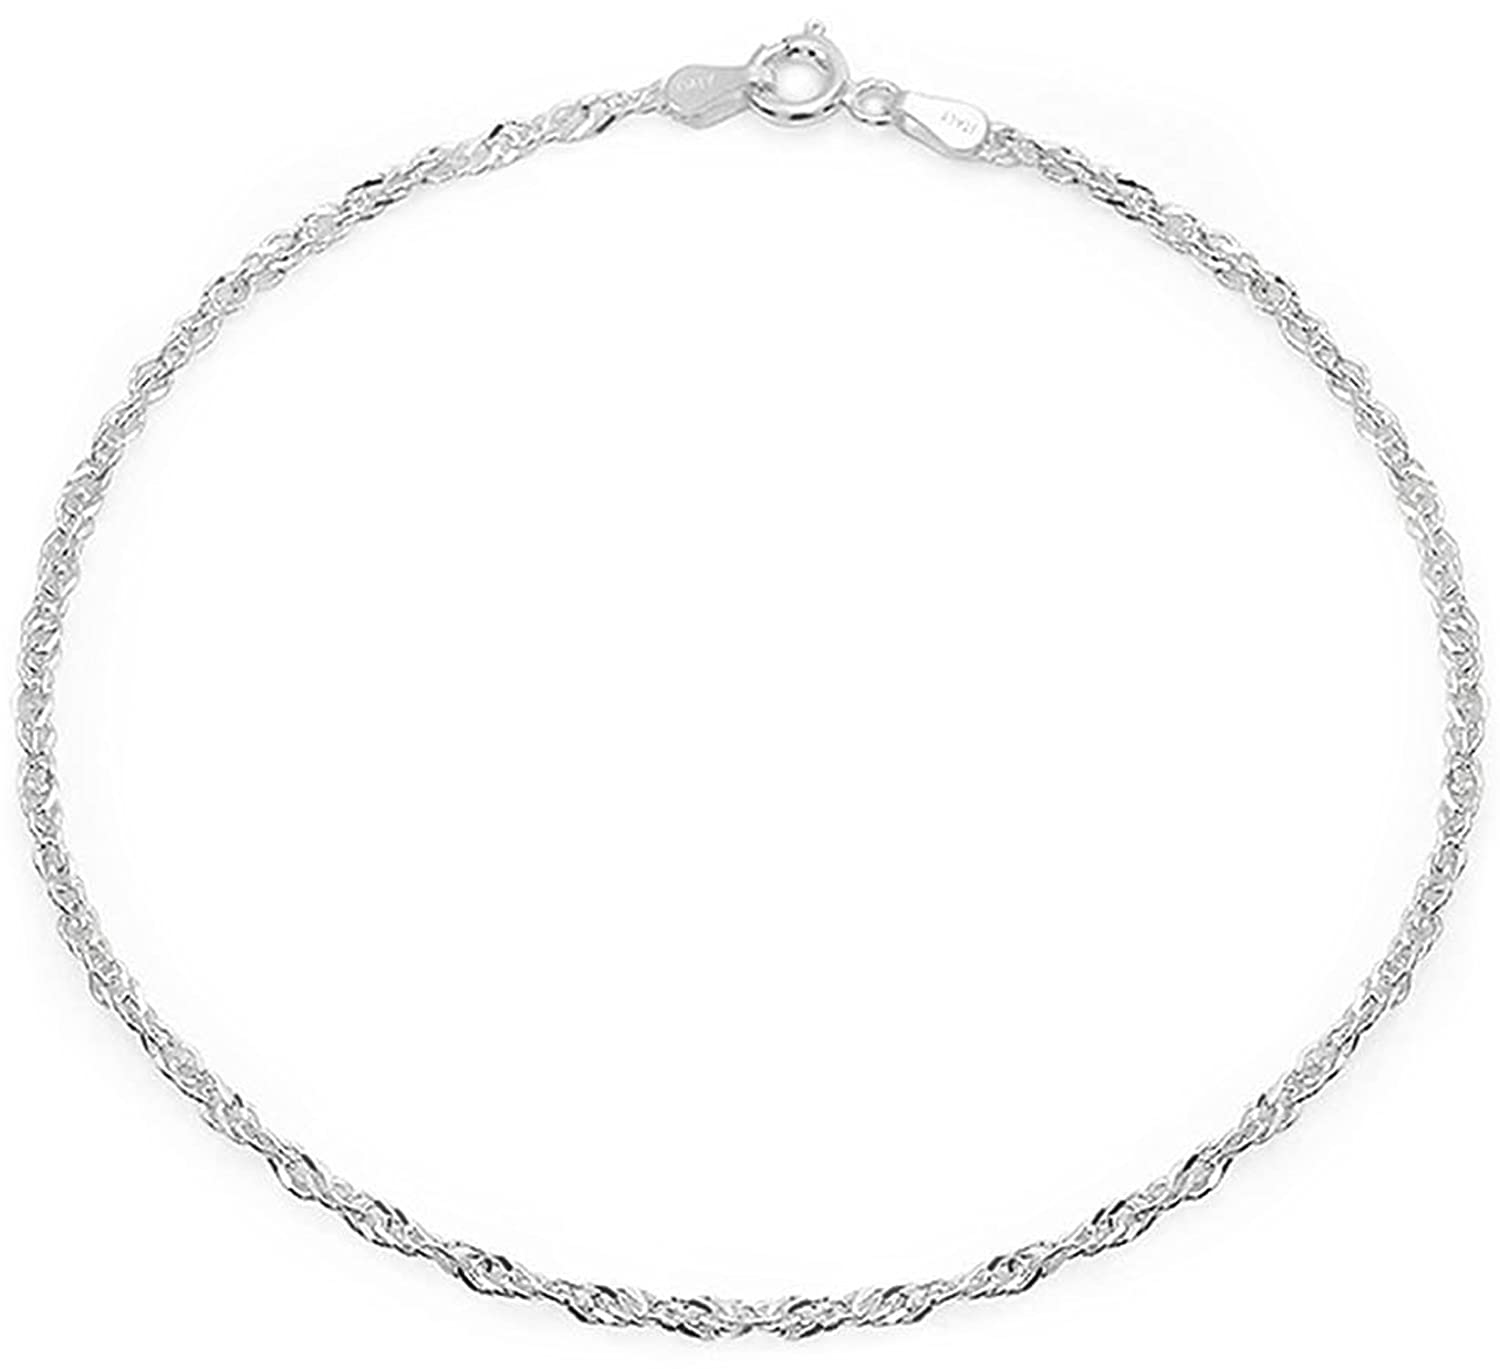 beads silver triple uk women for anklets womens platinum ankle s chain diamond amazon with anklet bracelet b sterling layered sweetiee co tiny